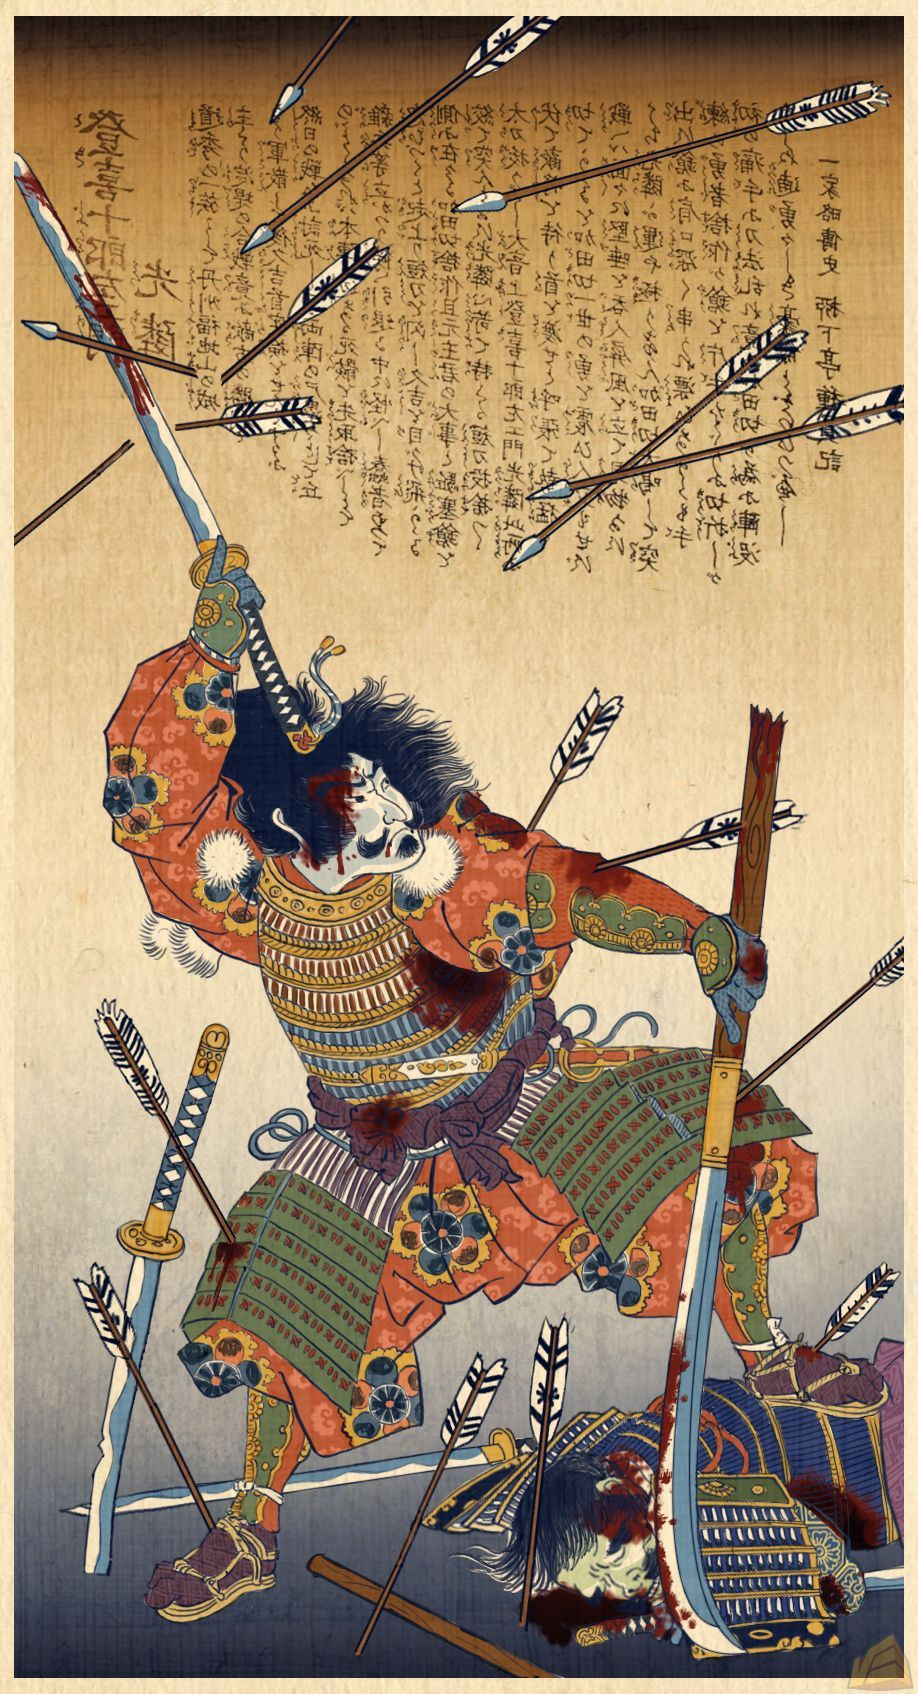 Samurai Japanese Warrior  Wall Art Poster Grand format A0 Large Print